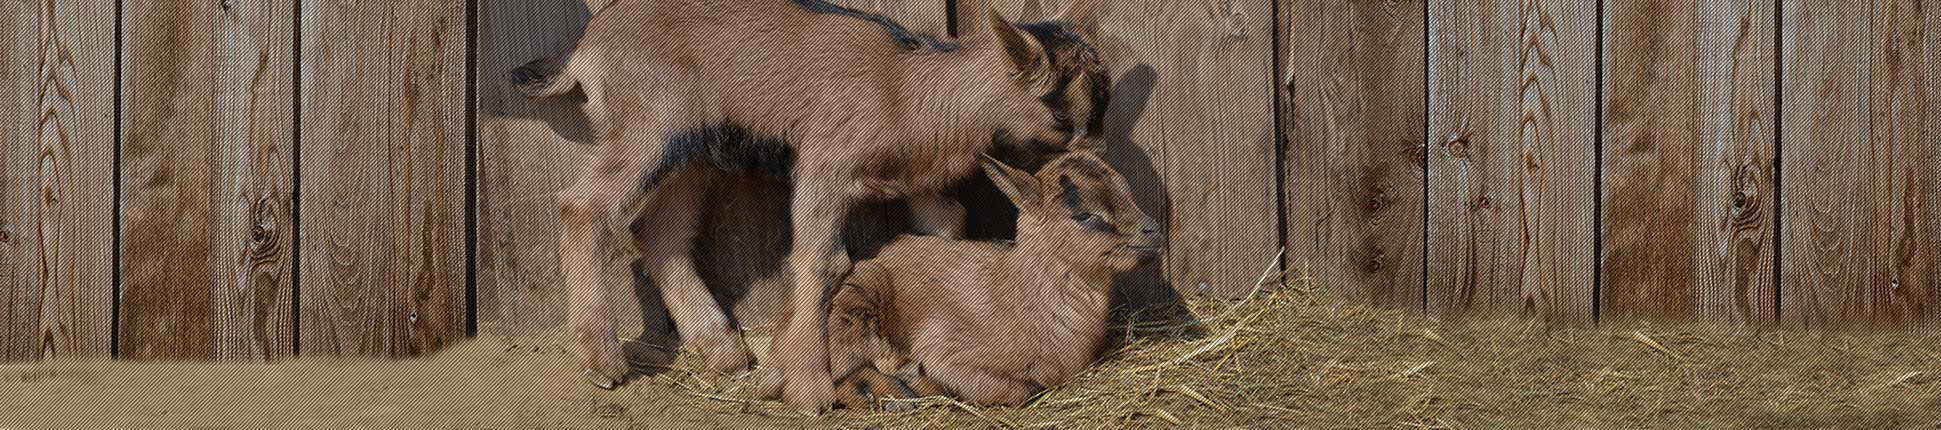 Goat Pregnancy Ultrasound